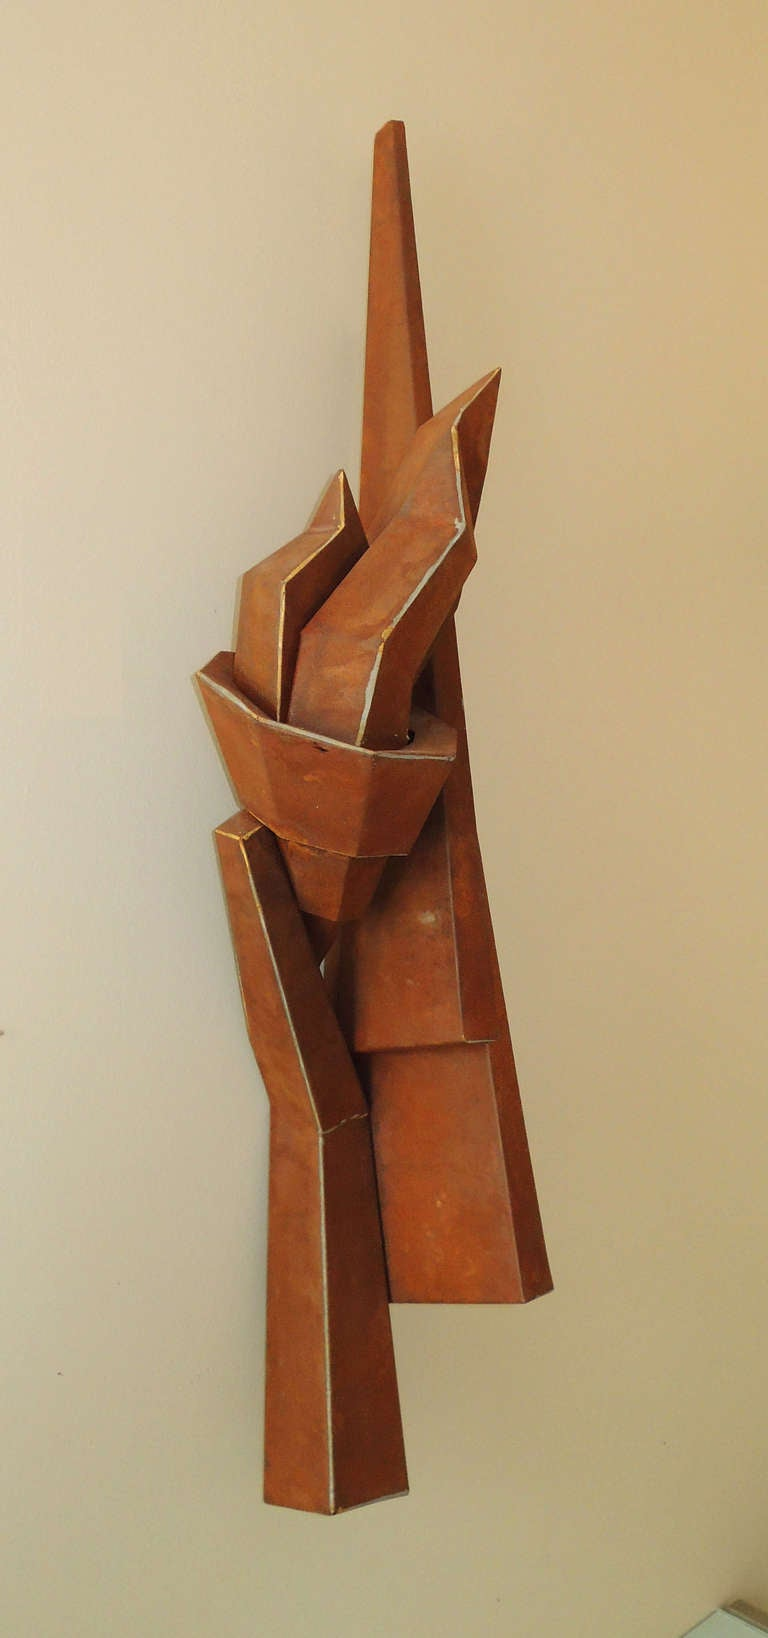 "Sculpture by Lisa Scheer ""Tian'namen #3"" In Excellent Condition For Sale In Washington, DC"